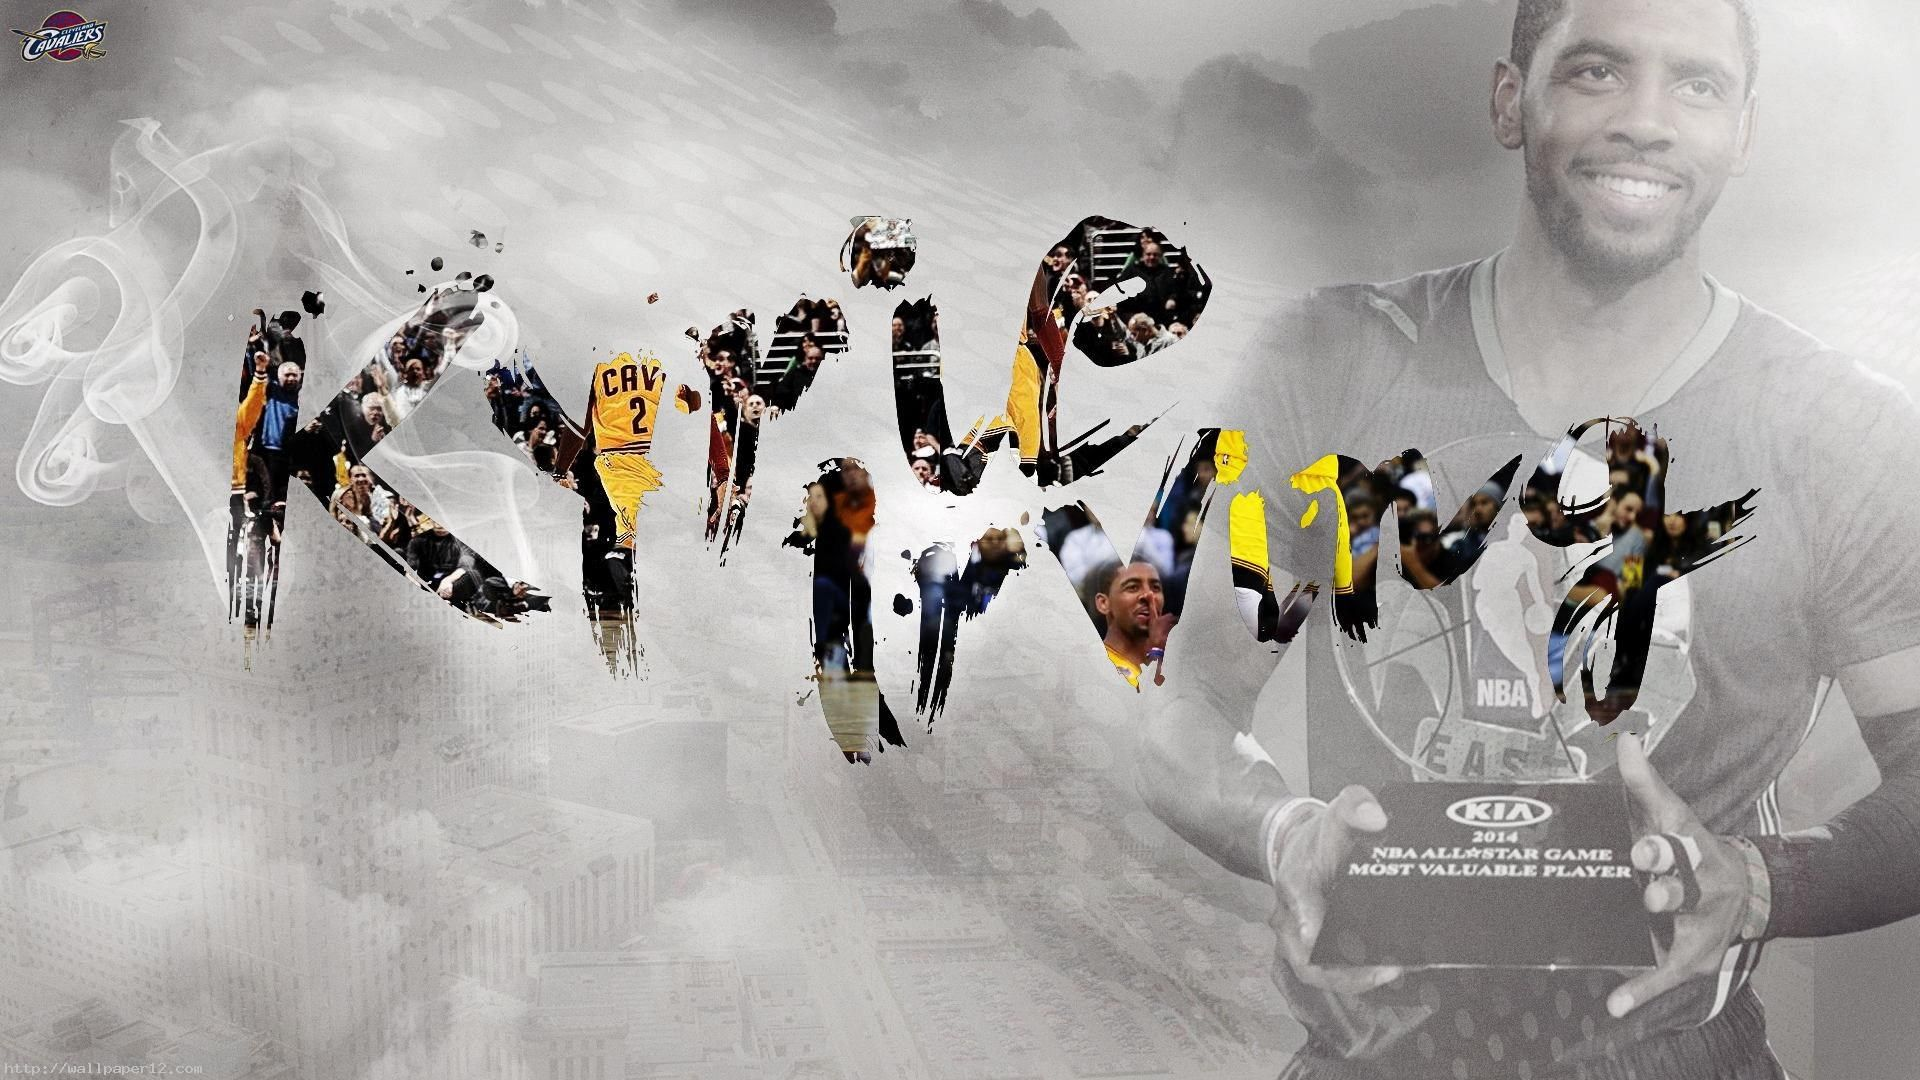 Kyrie Irving Dope Pics: 1920x1080 Windows Wallpaper Kyrie Irving